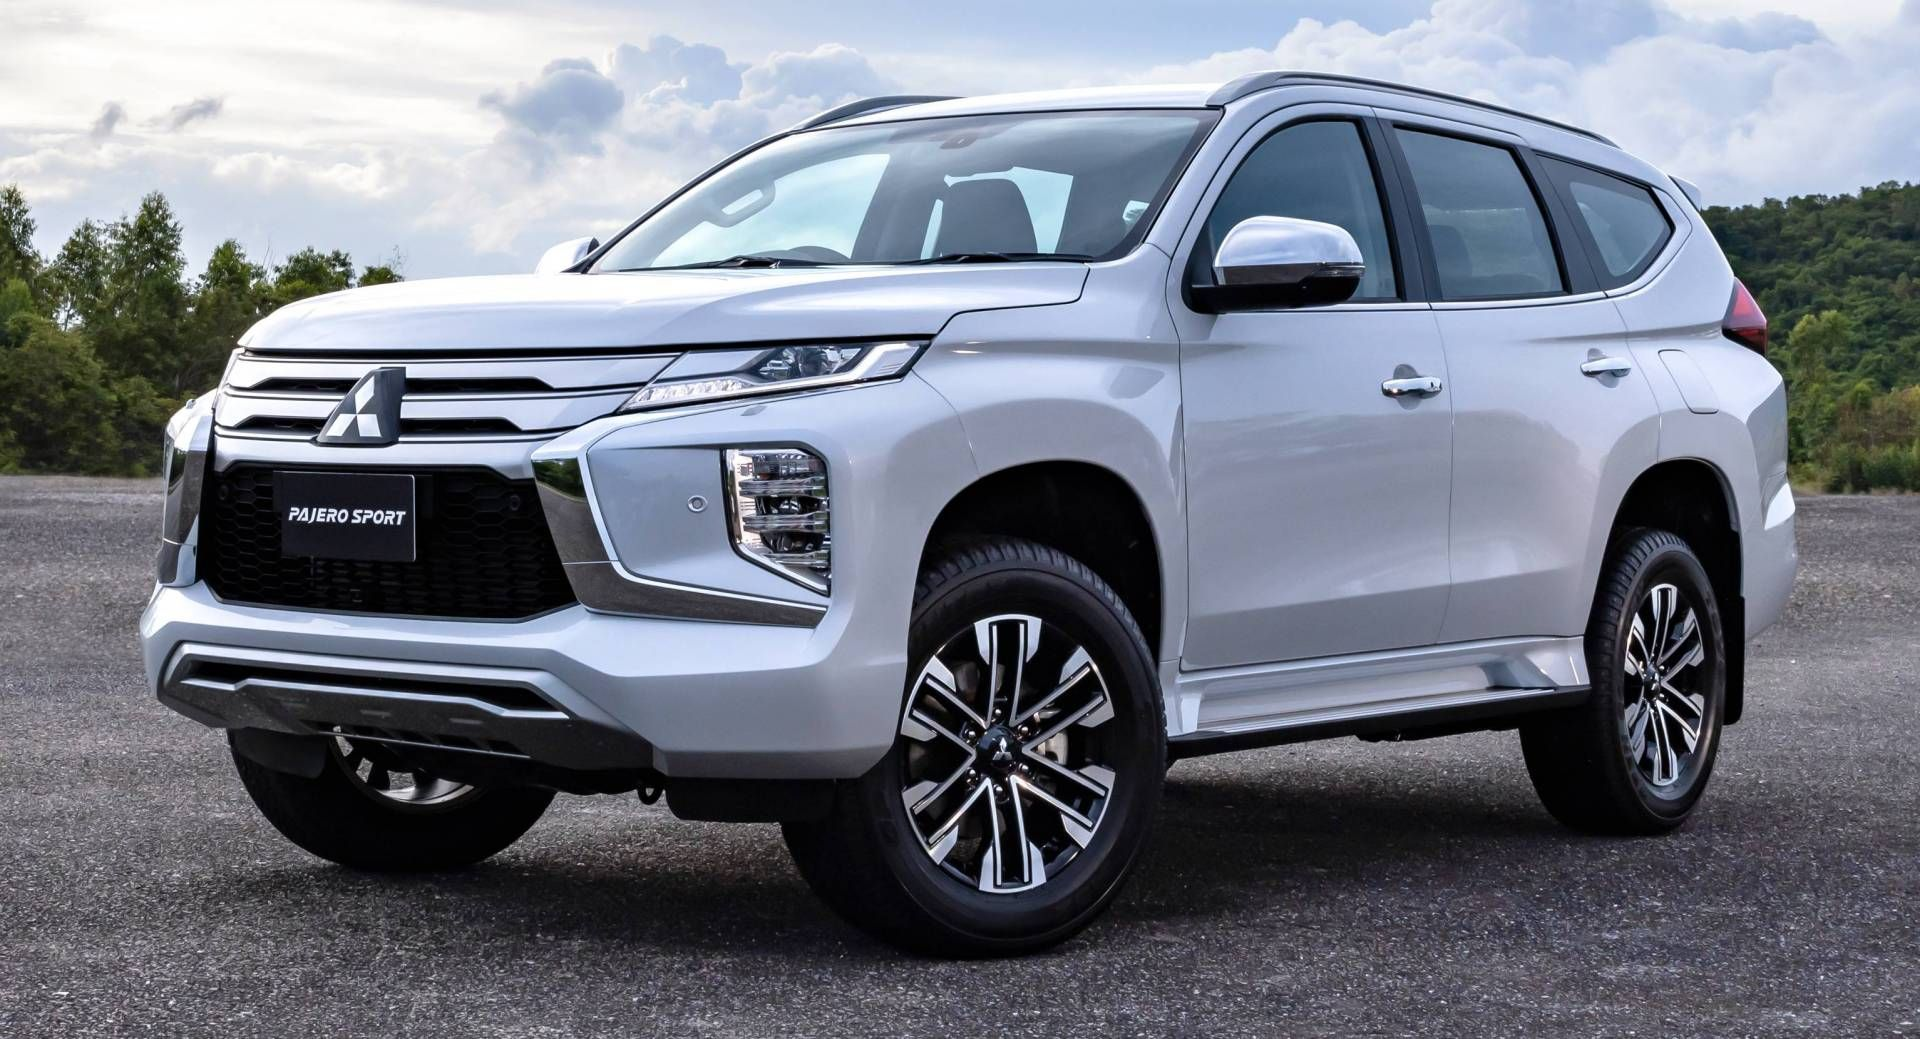 2020 Mitsubishi Pajero Sport Debuts With Updated Design New Tech Mobil